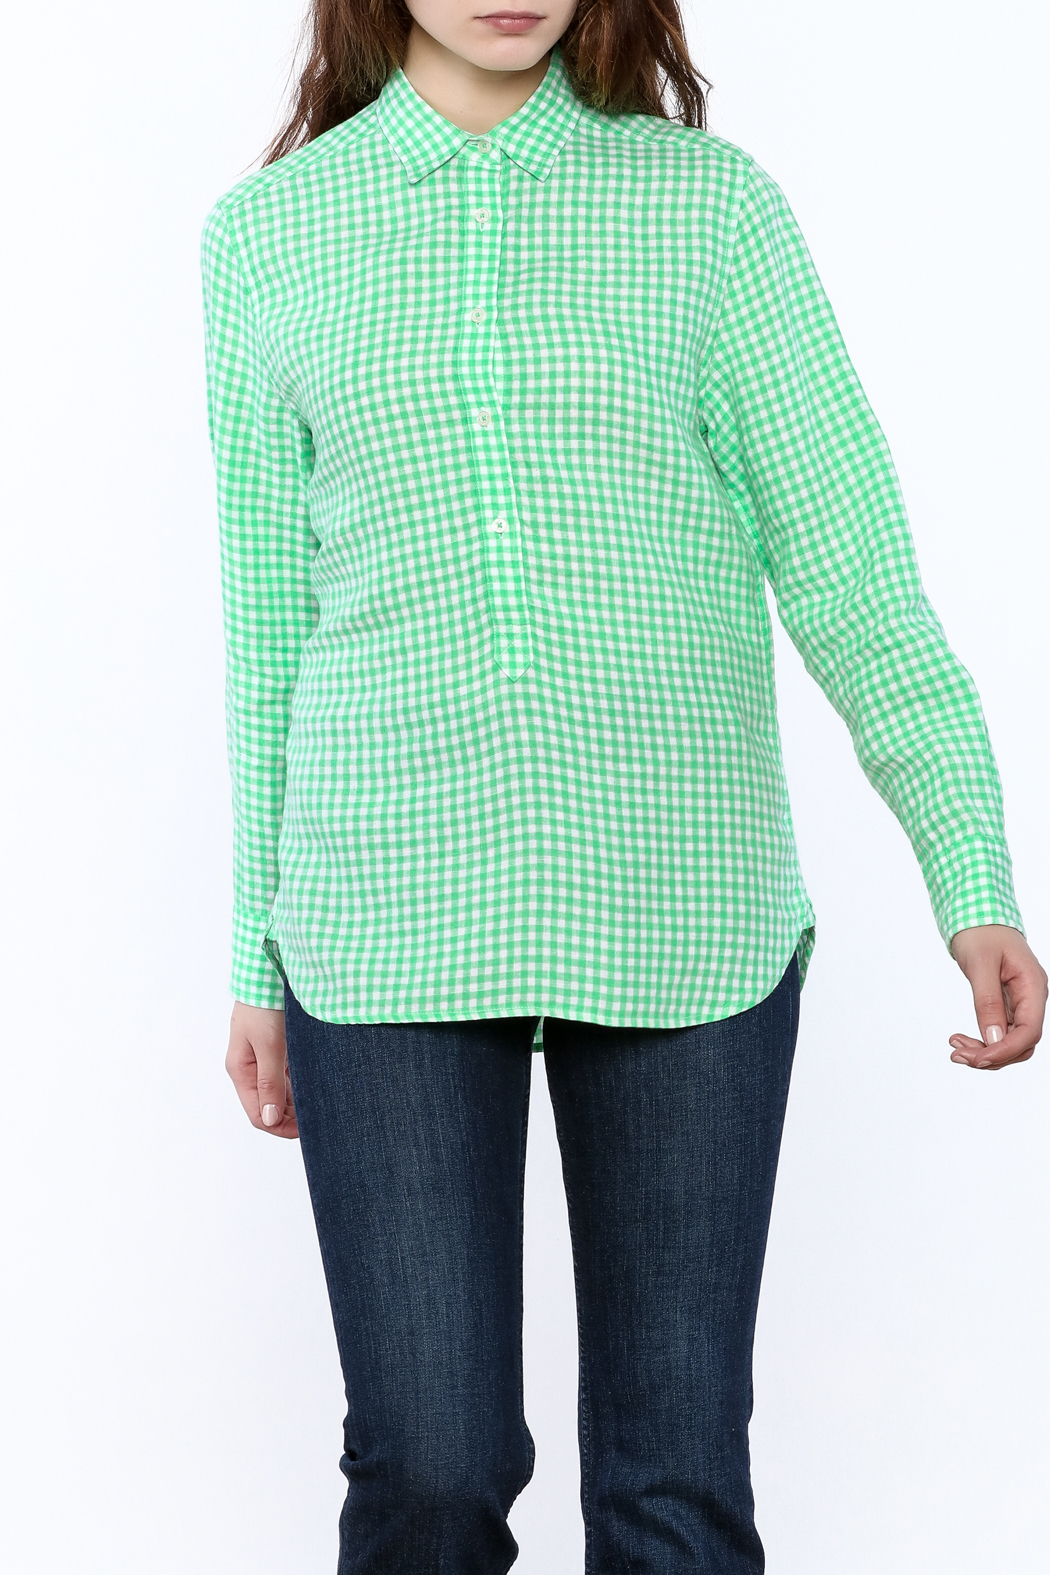 Southern Tide Gingham Button-Down Top - Front Cropped Image